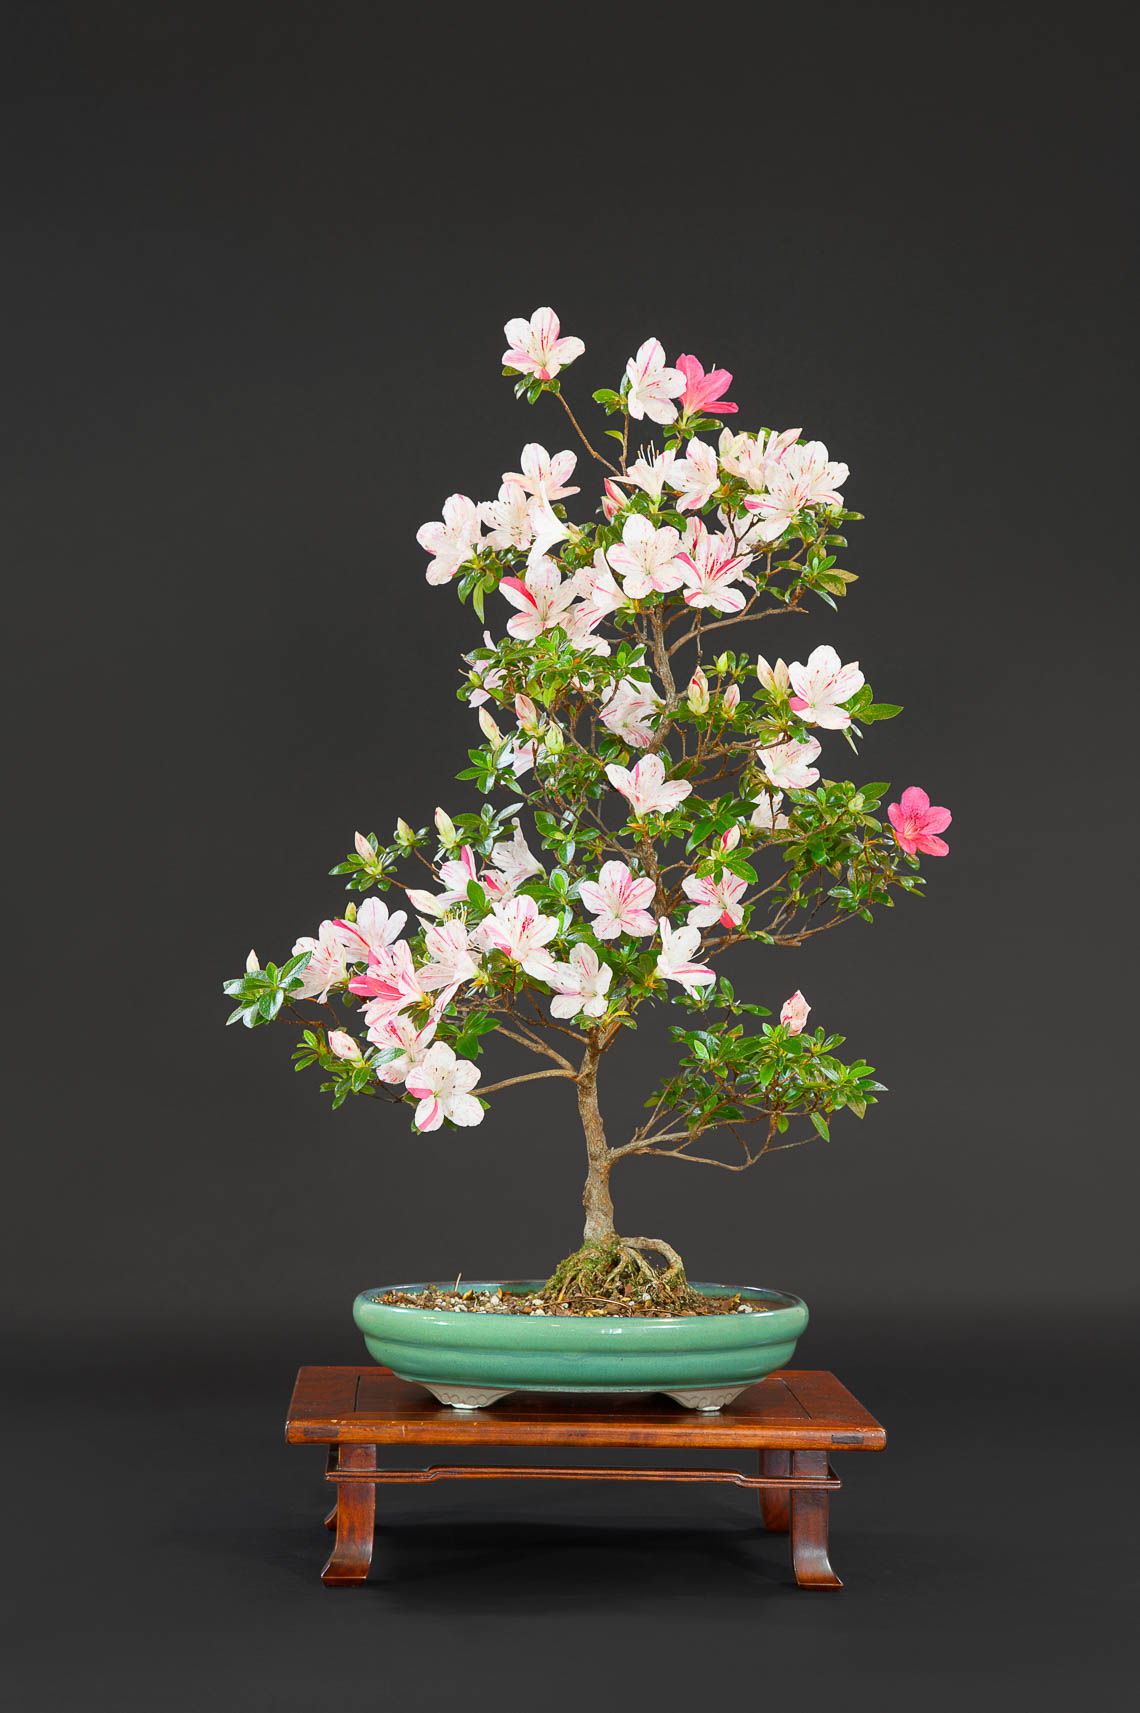 20180422_Bonsai-70-edit